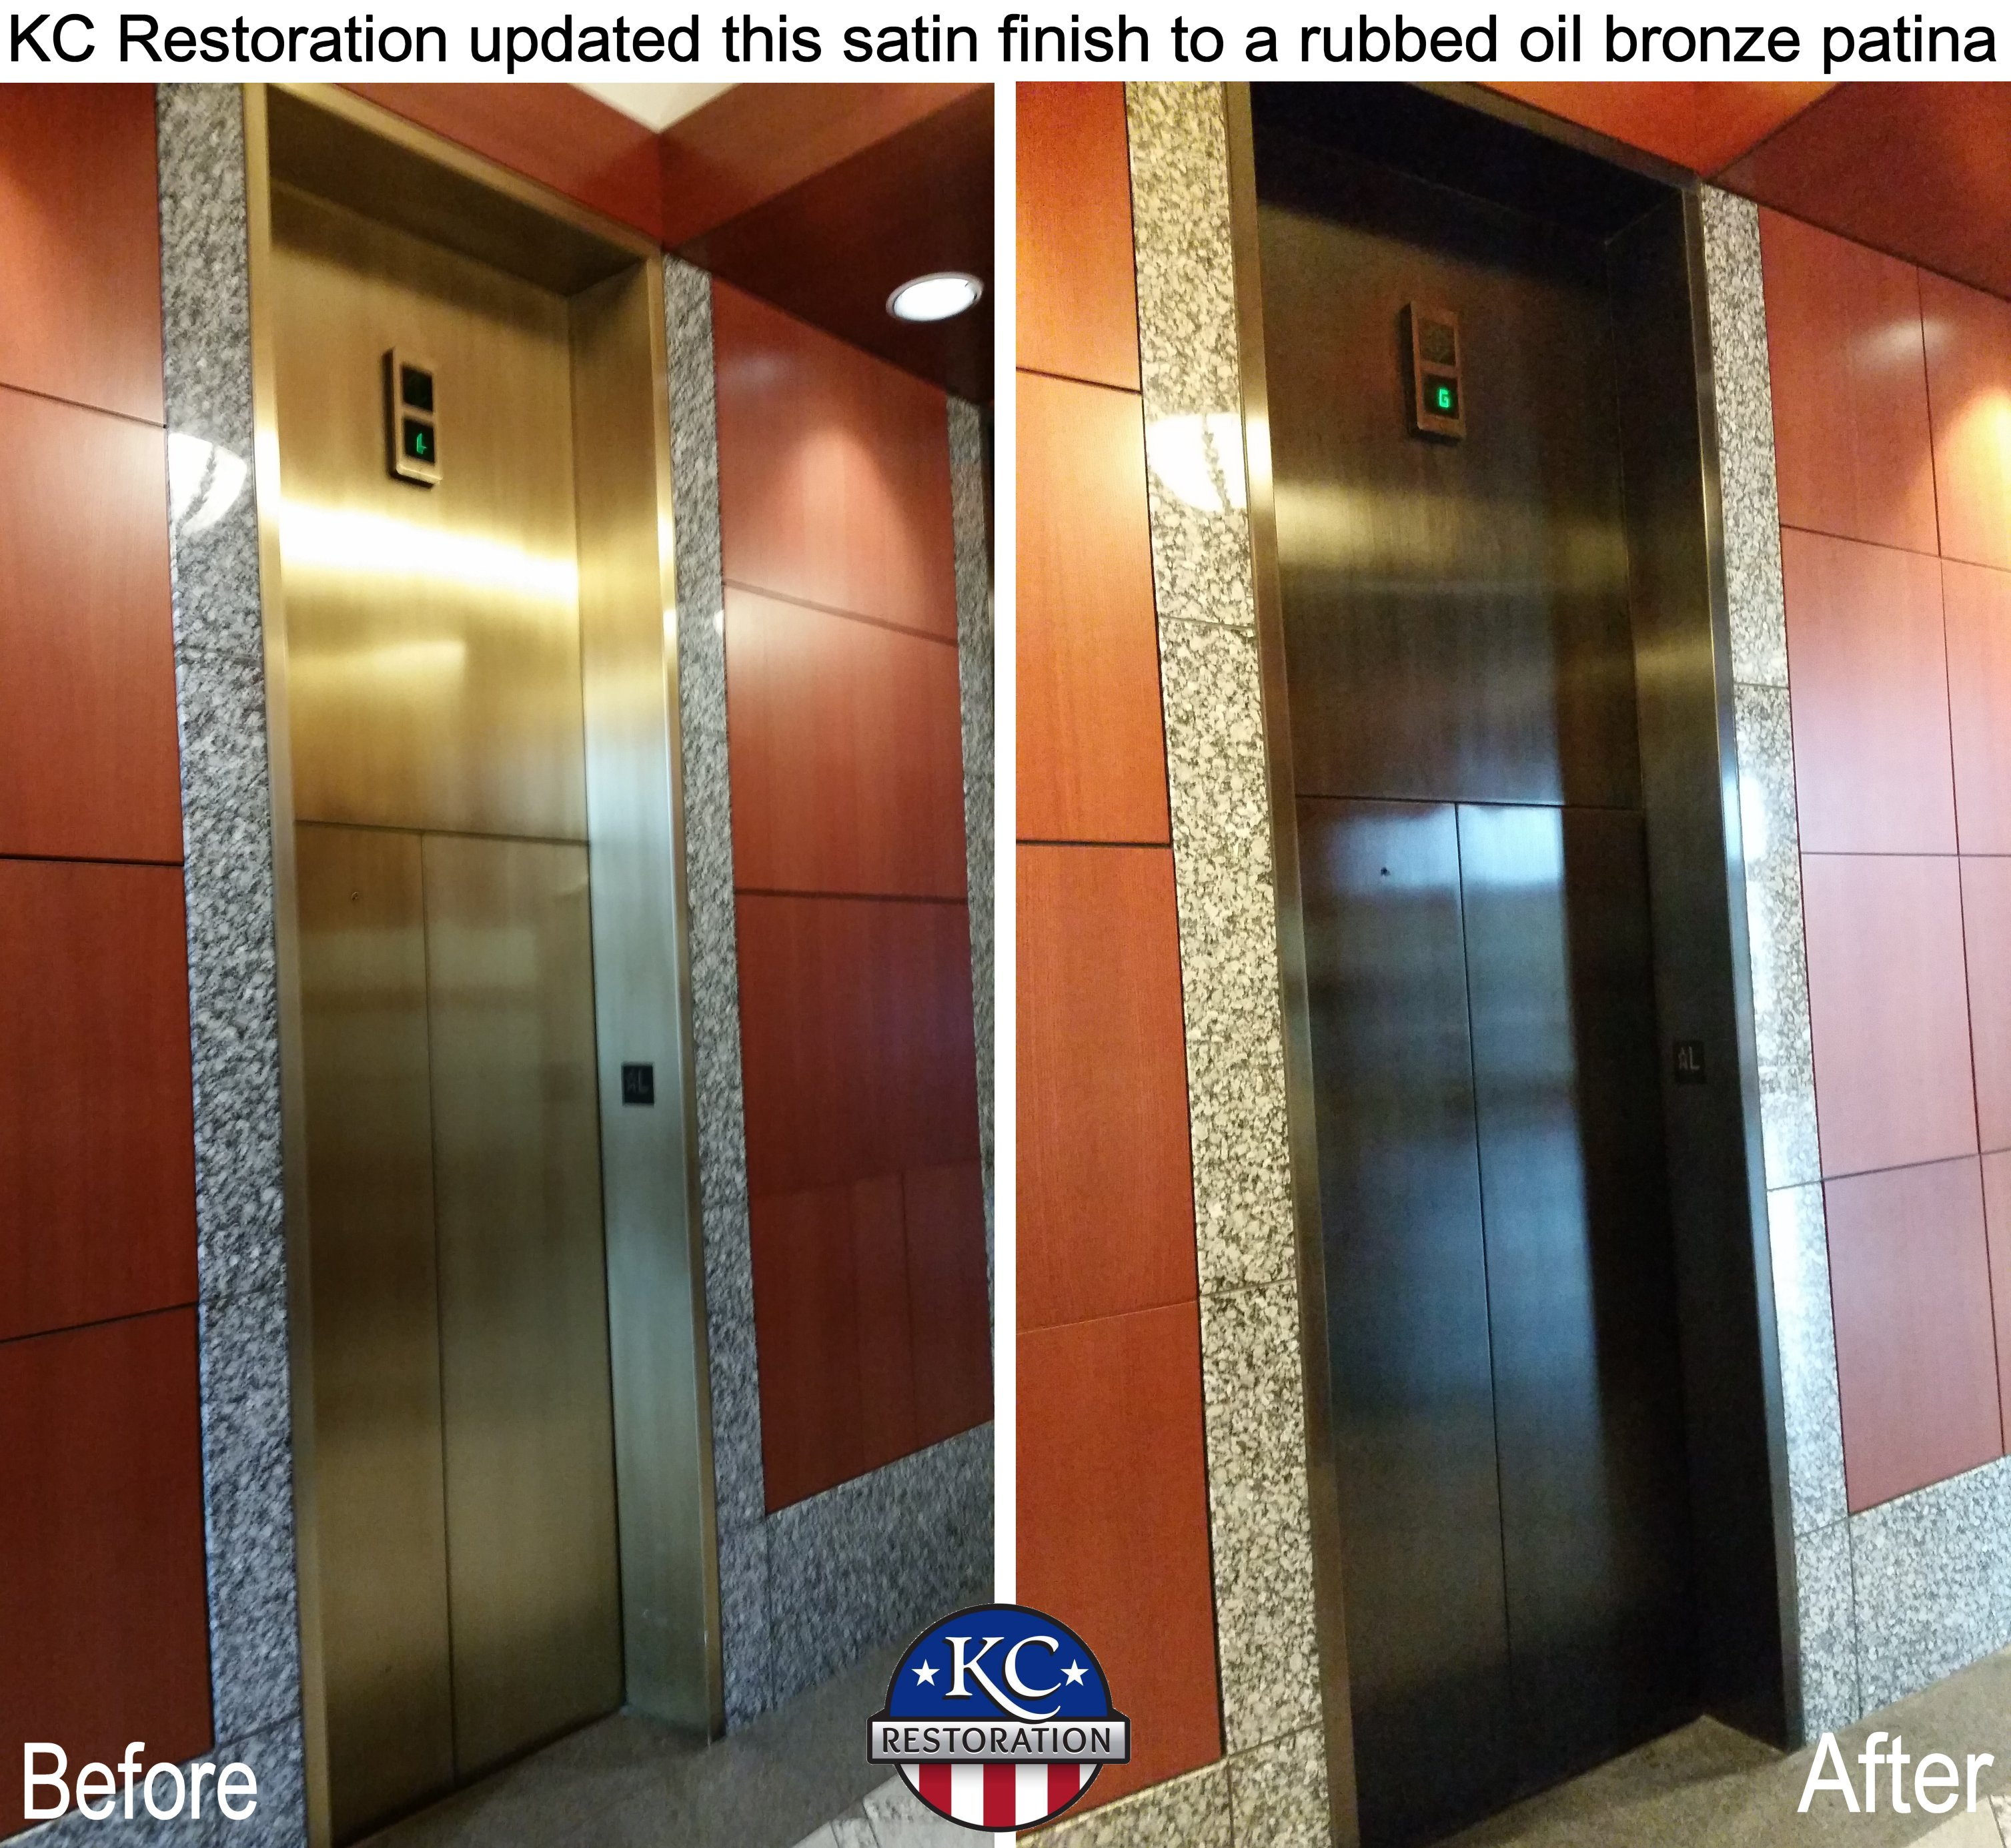 Elevator before and after